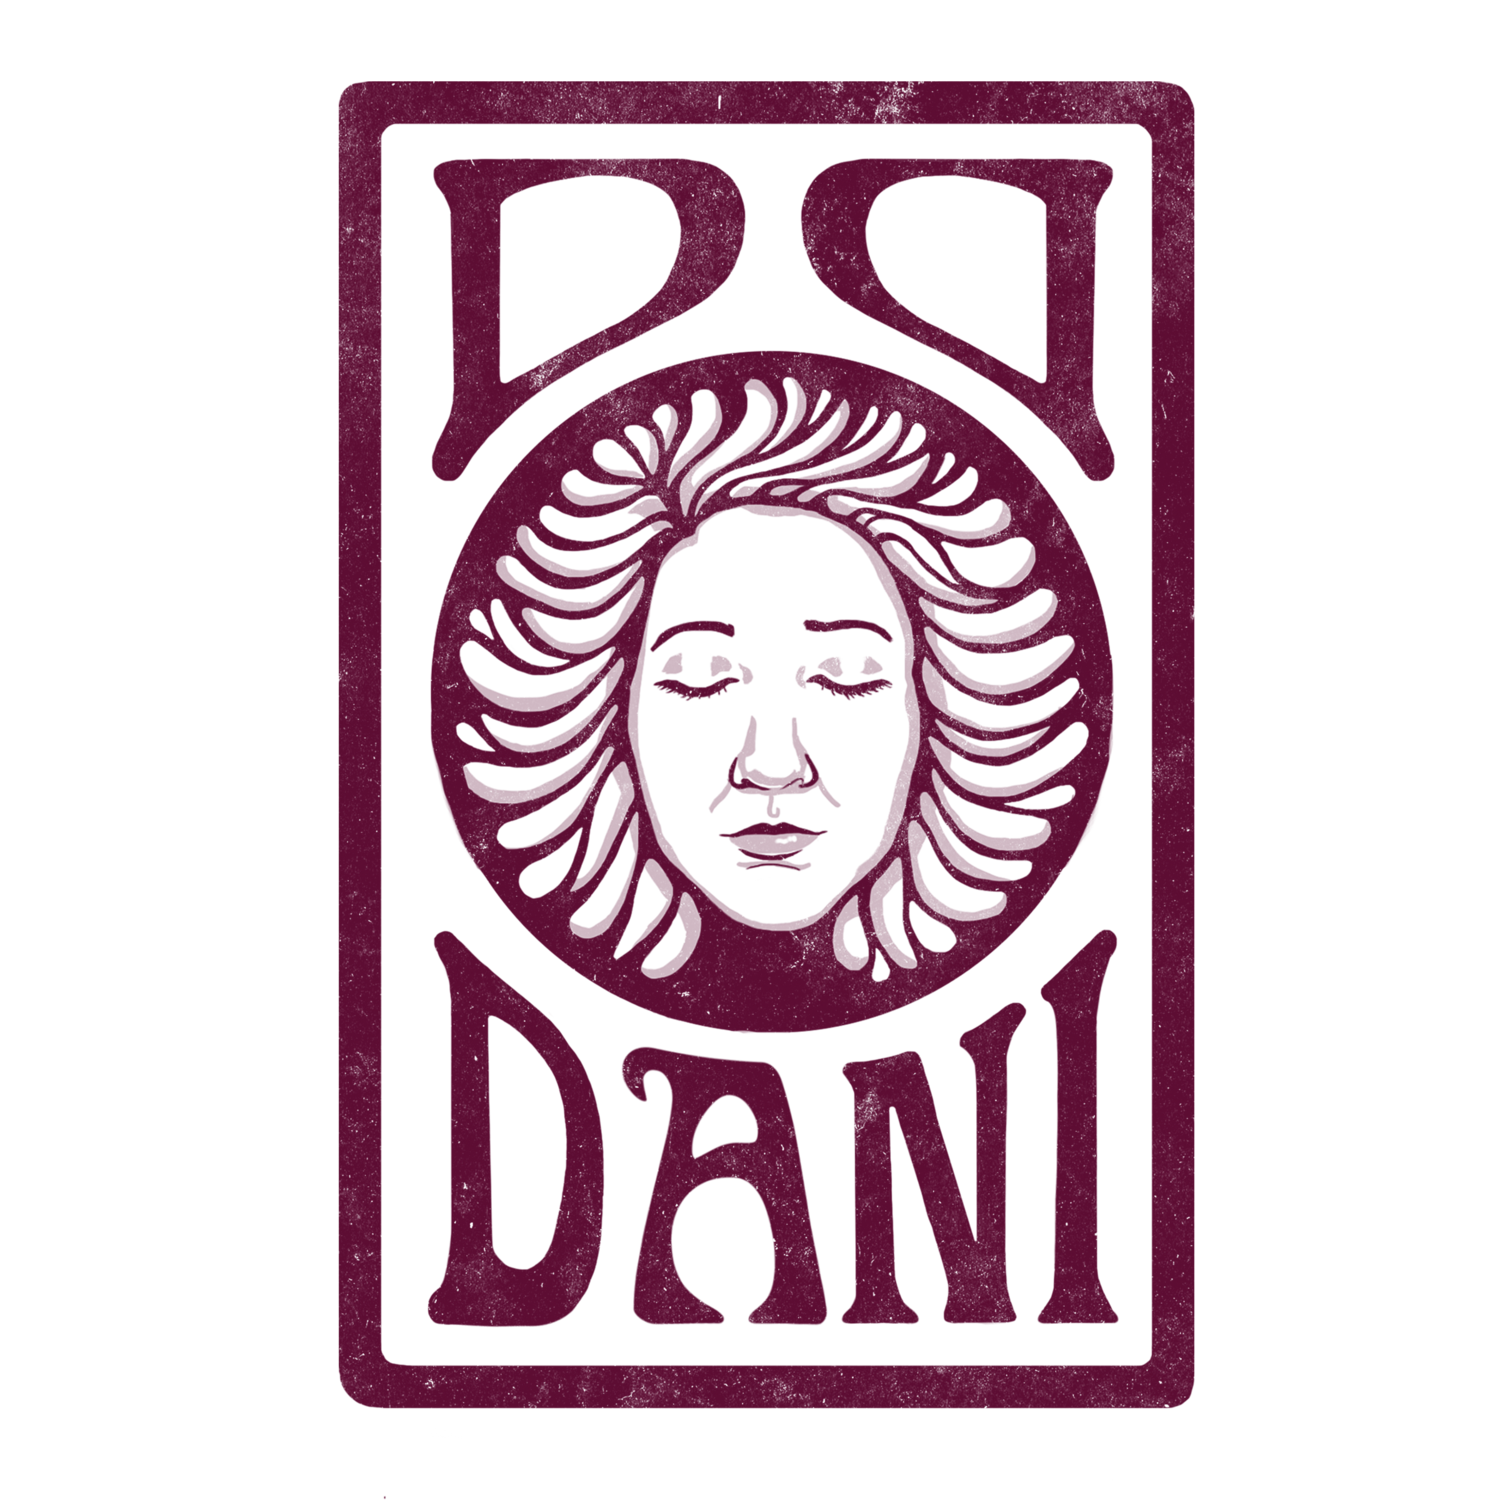 Danidesign Art | Illustrator & Design Consultancy Near Philadelphia